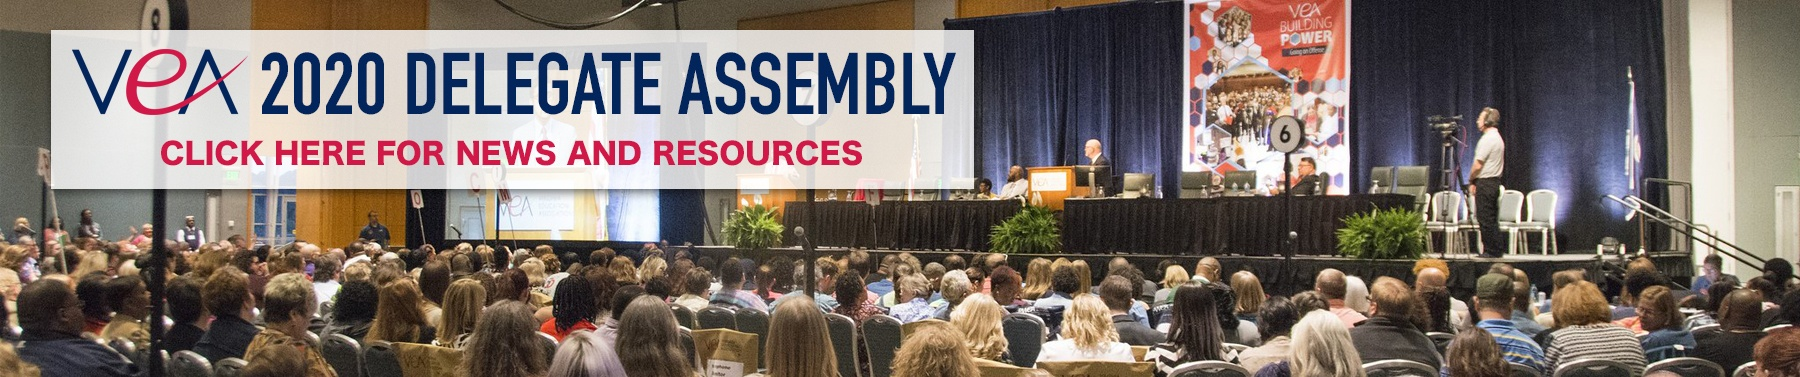 VEA 2020 Delegate Assembly News and Resources